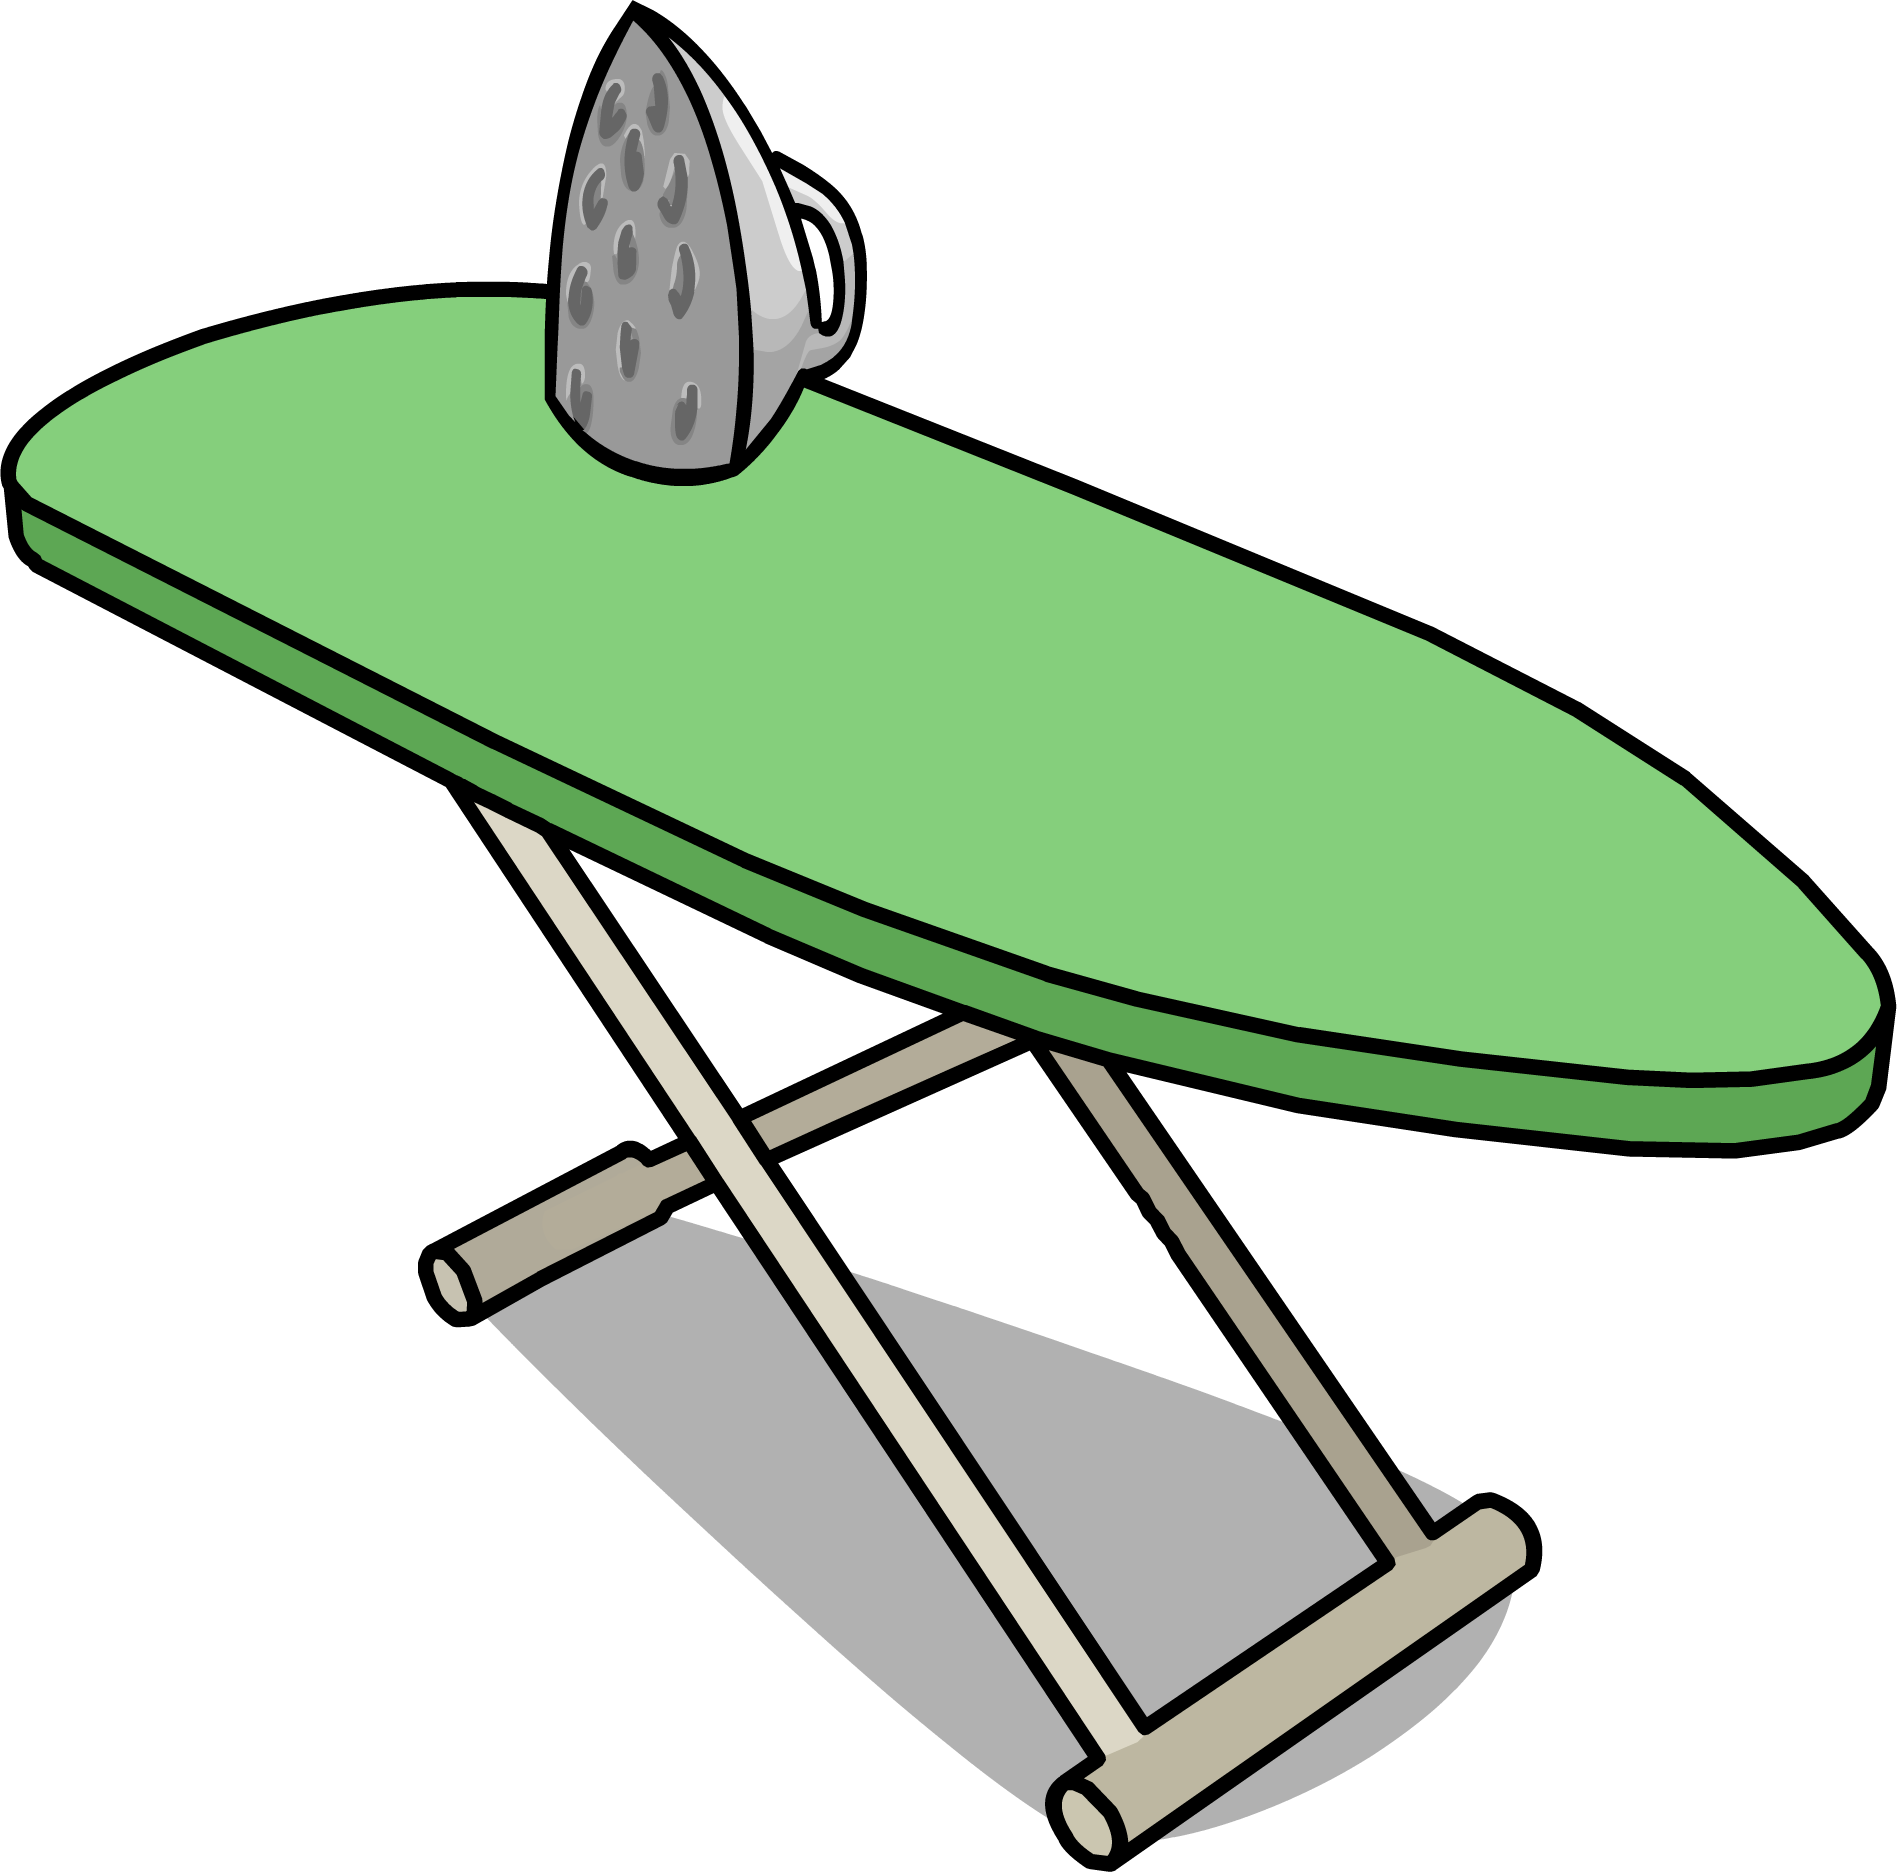 Clipart table board director. Image ironing sprite png